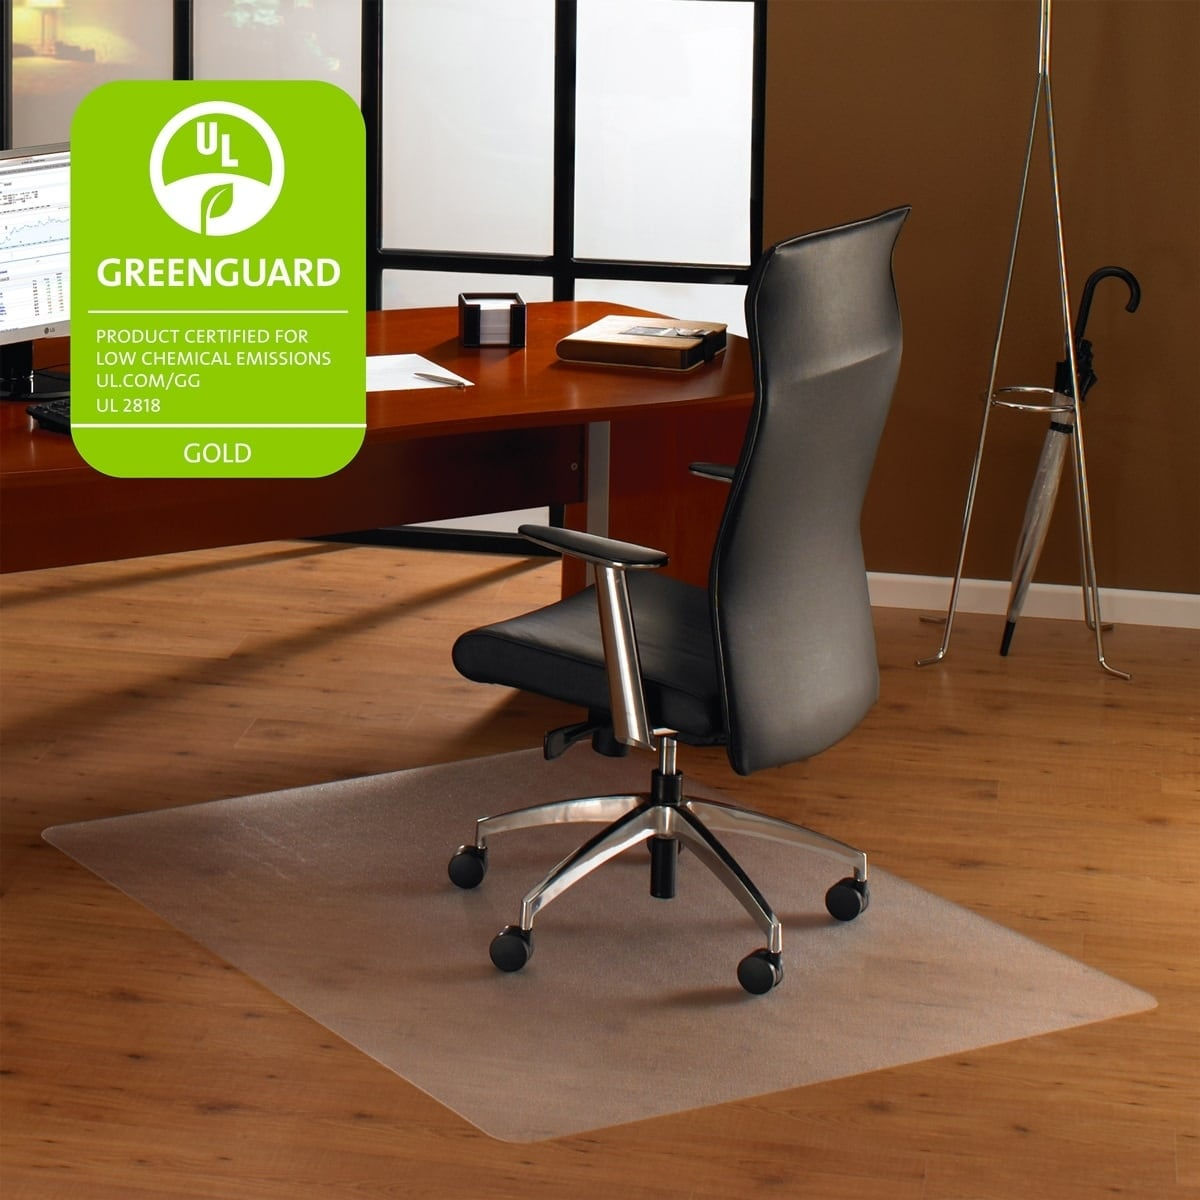 clear chair mat steel in wrestling shop cleartex ultimat square polycarbonate for hard floors size 48 x